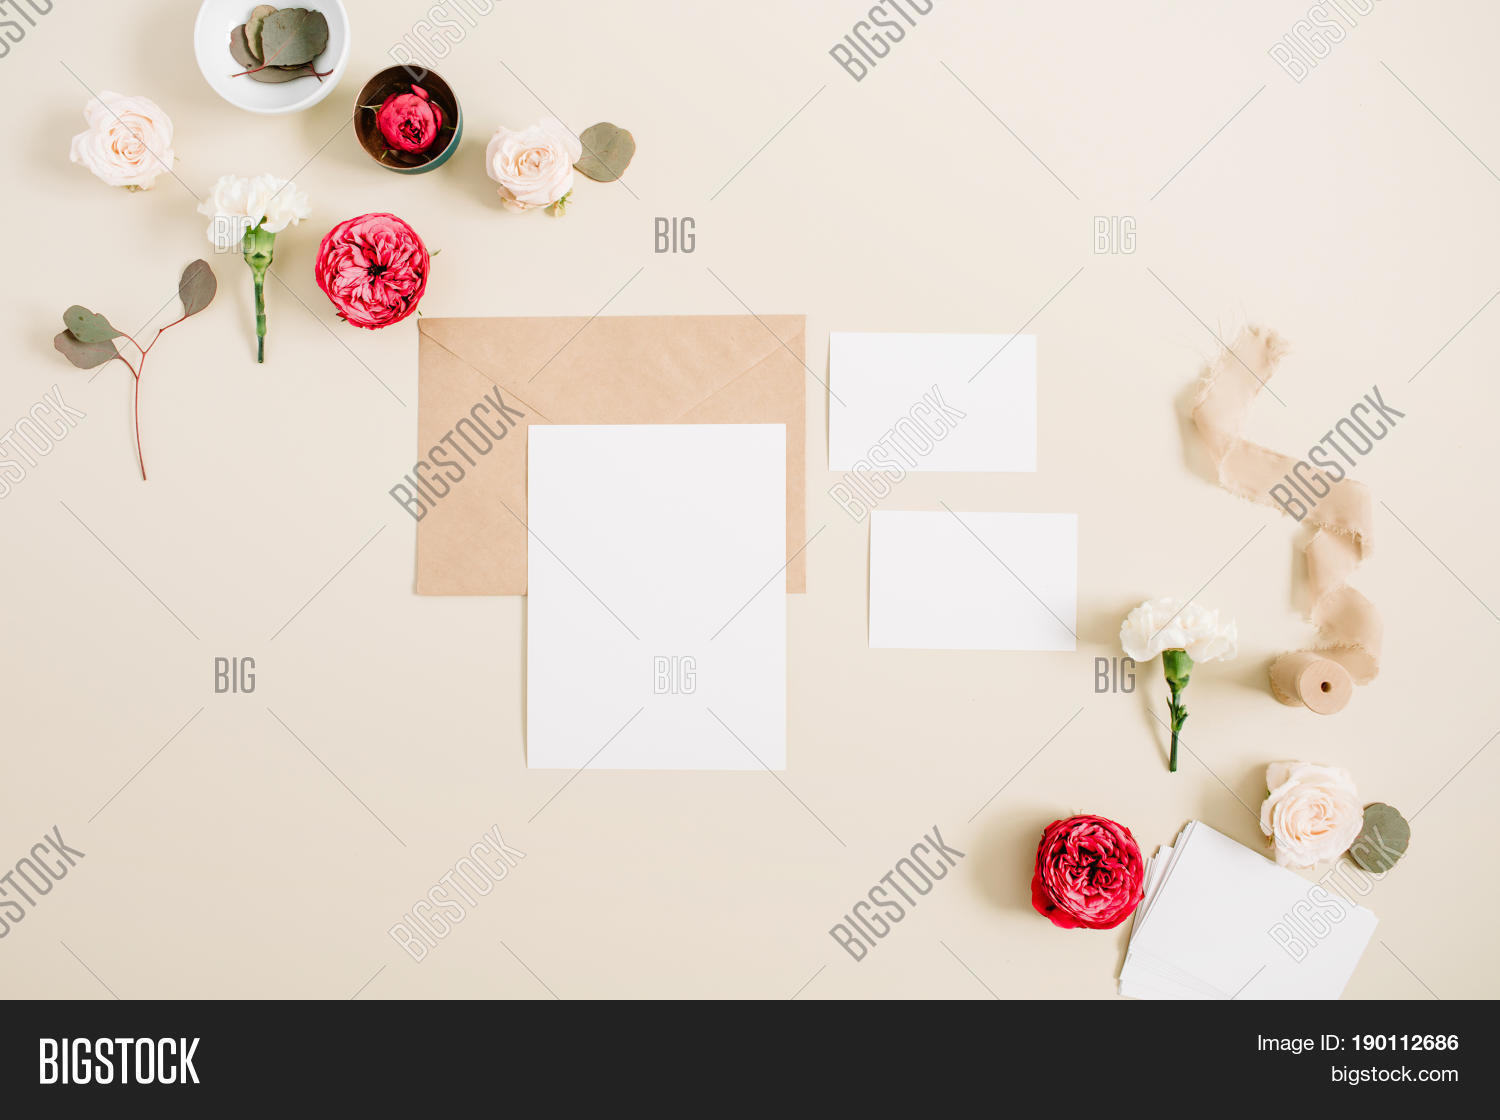 Wedding Invitation Image Photo Free Trial Bigstock